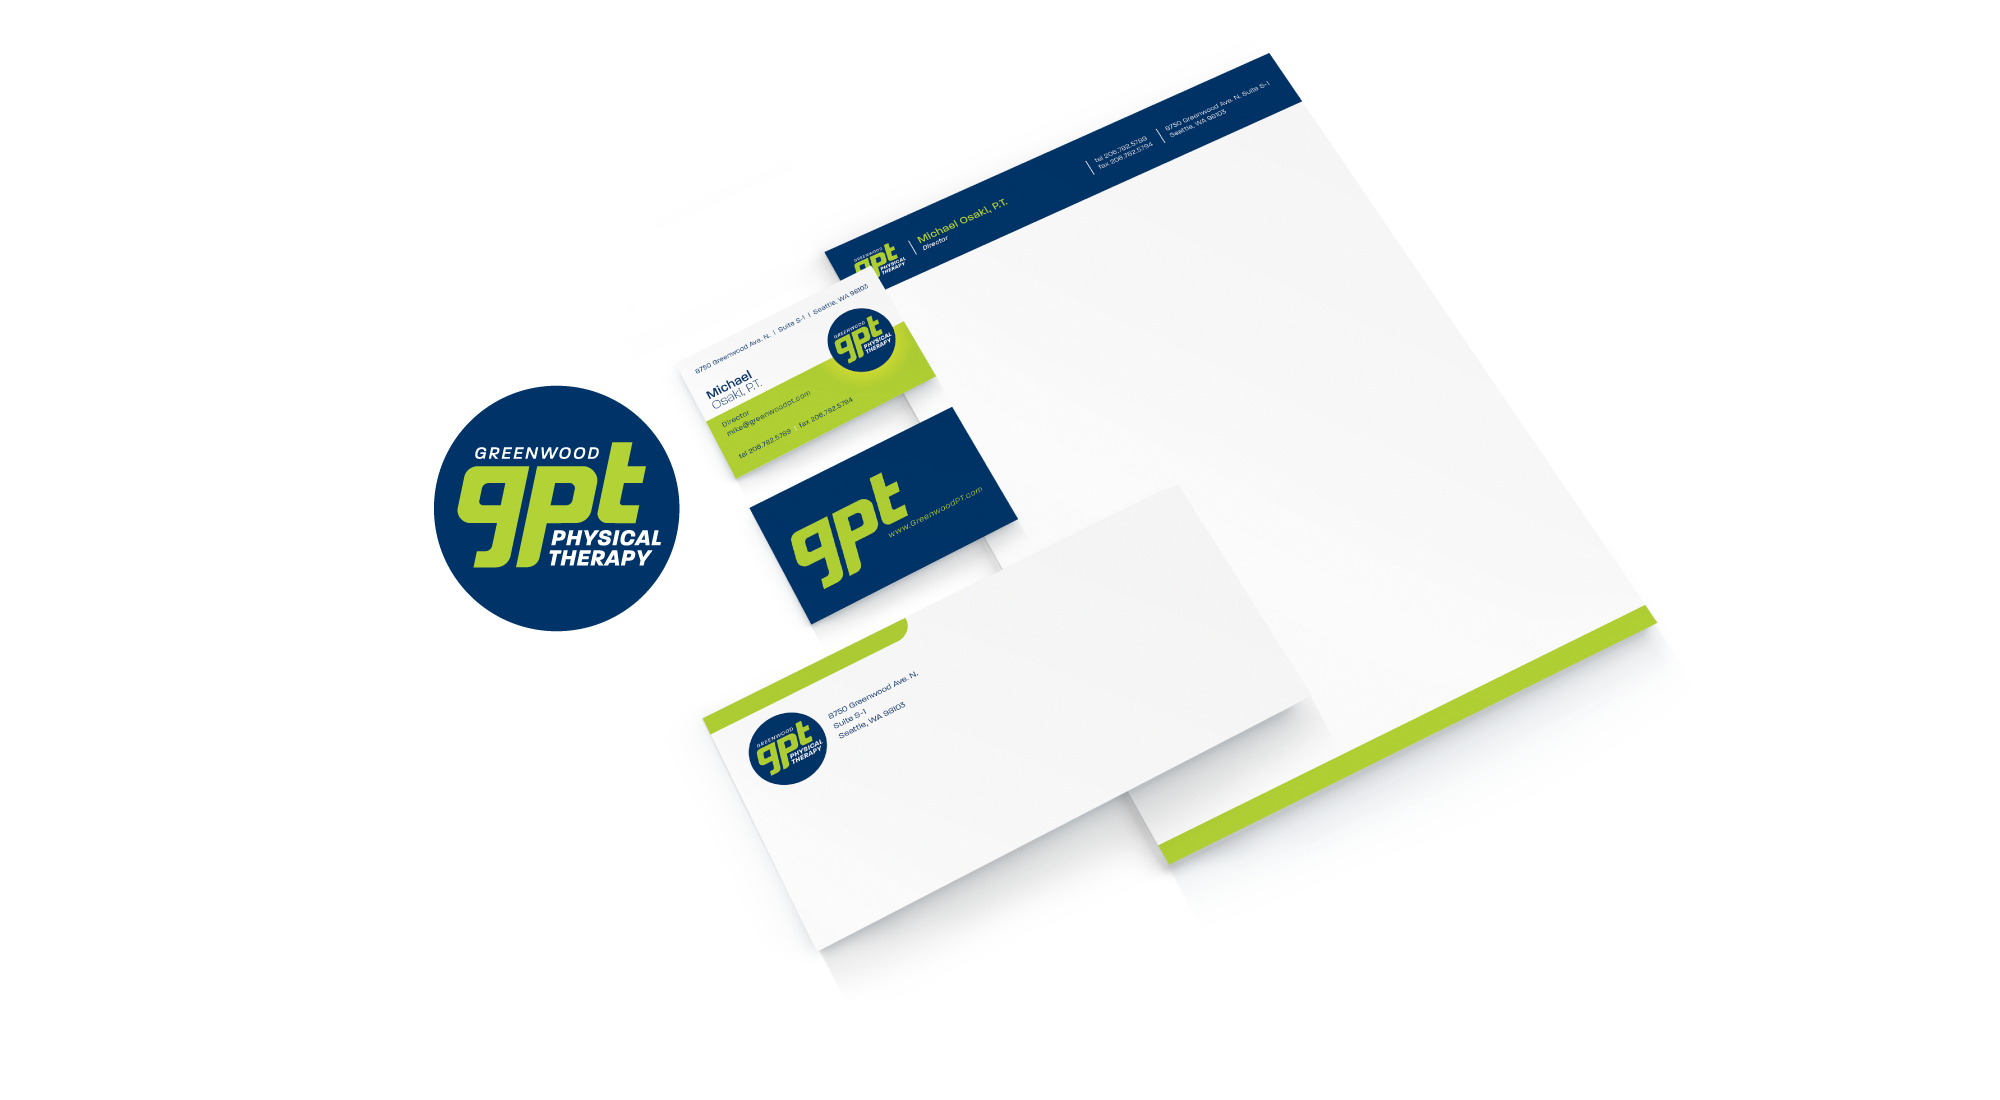 Greenwood Physical Therapy Branding